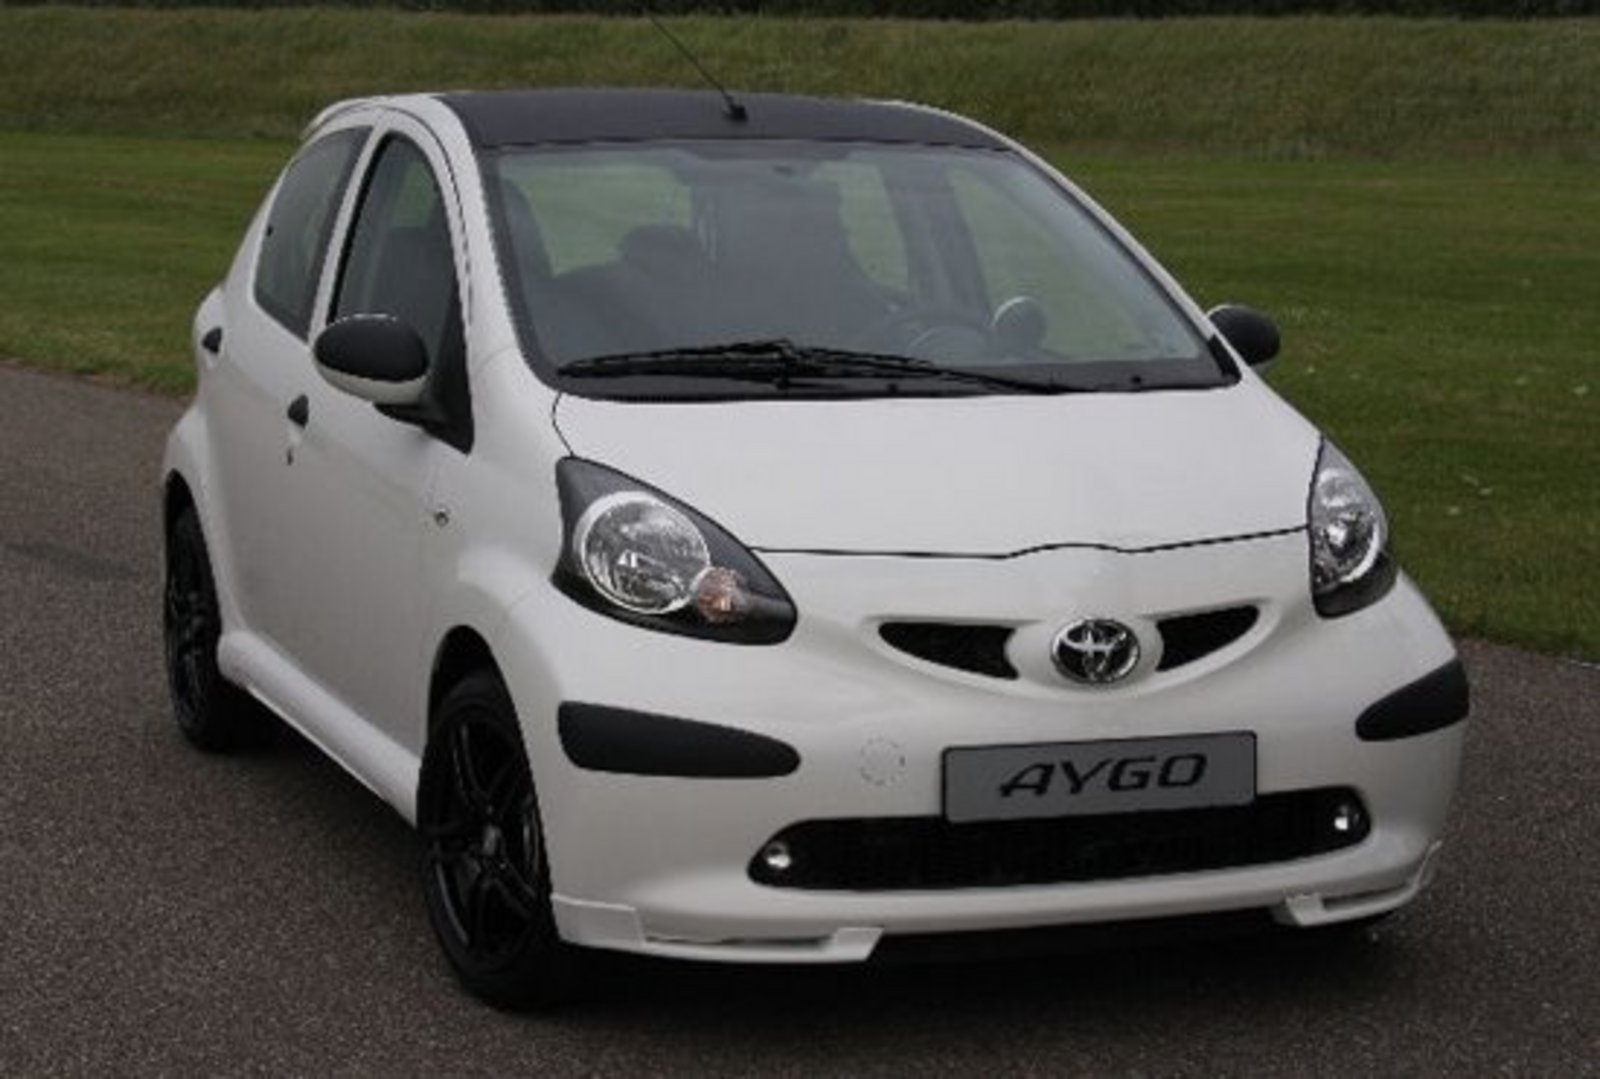 2008 toyota aygo xposed edition review gallery top speed. Black Bedroom Furniture Sets. Home Design Ideas